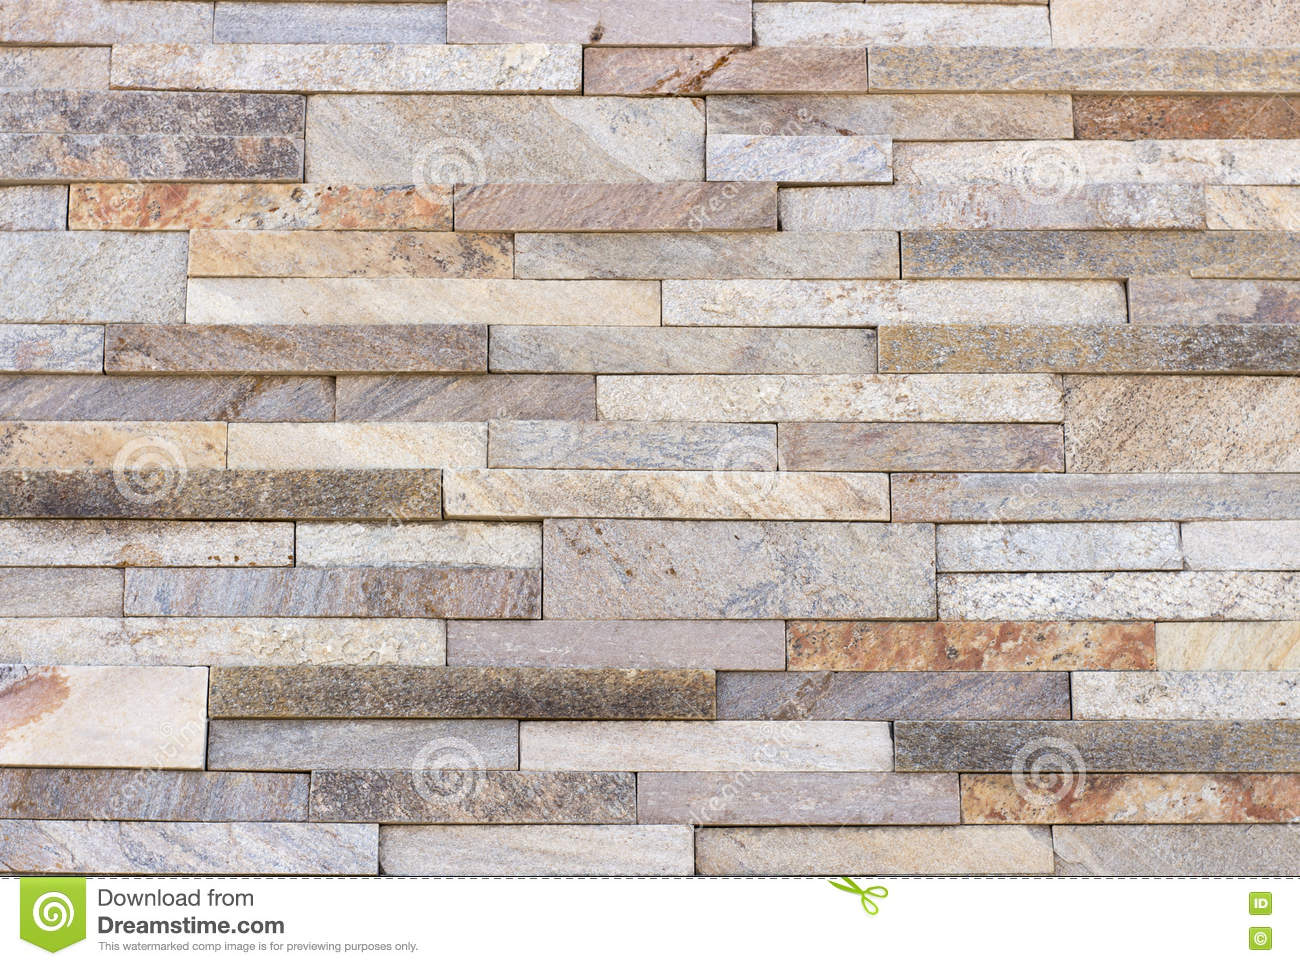 Brick tiles - a popular building material for facade cladding 64